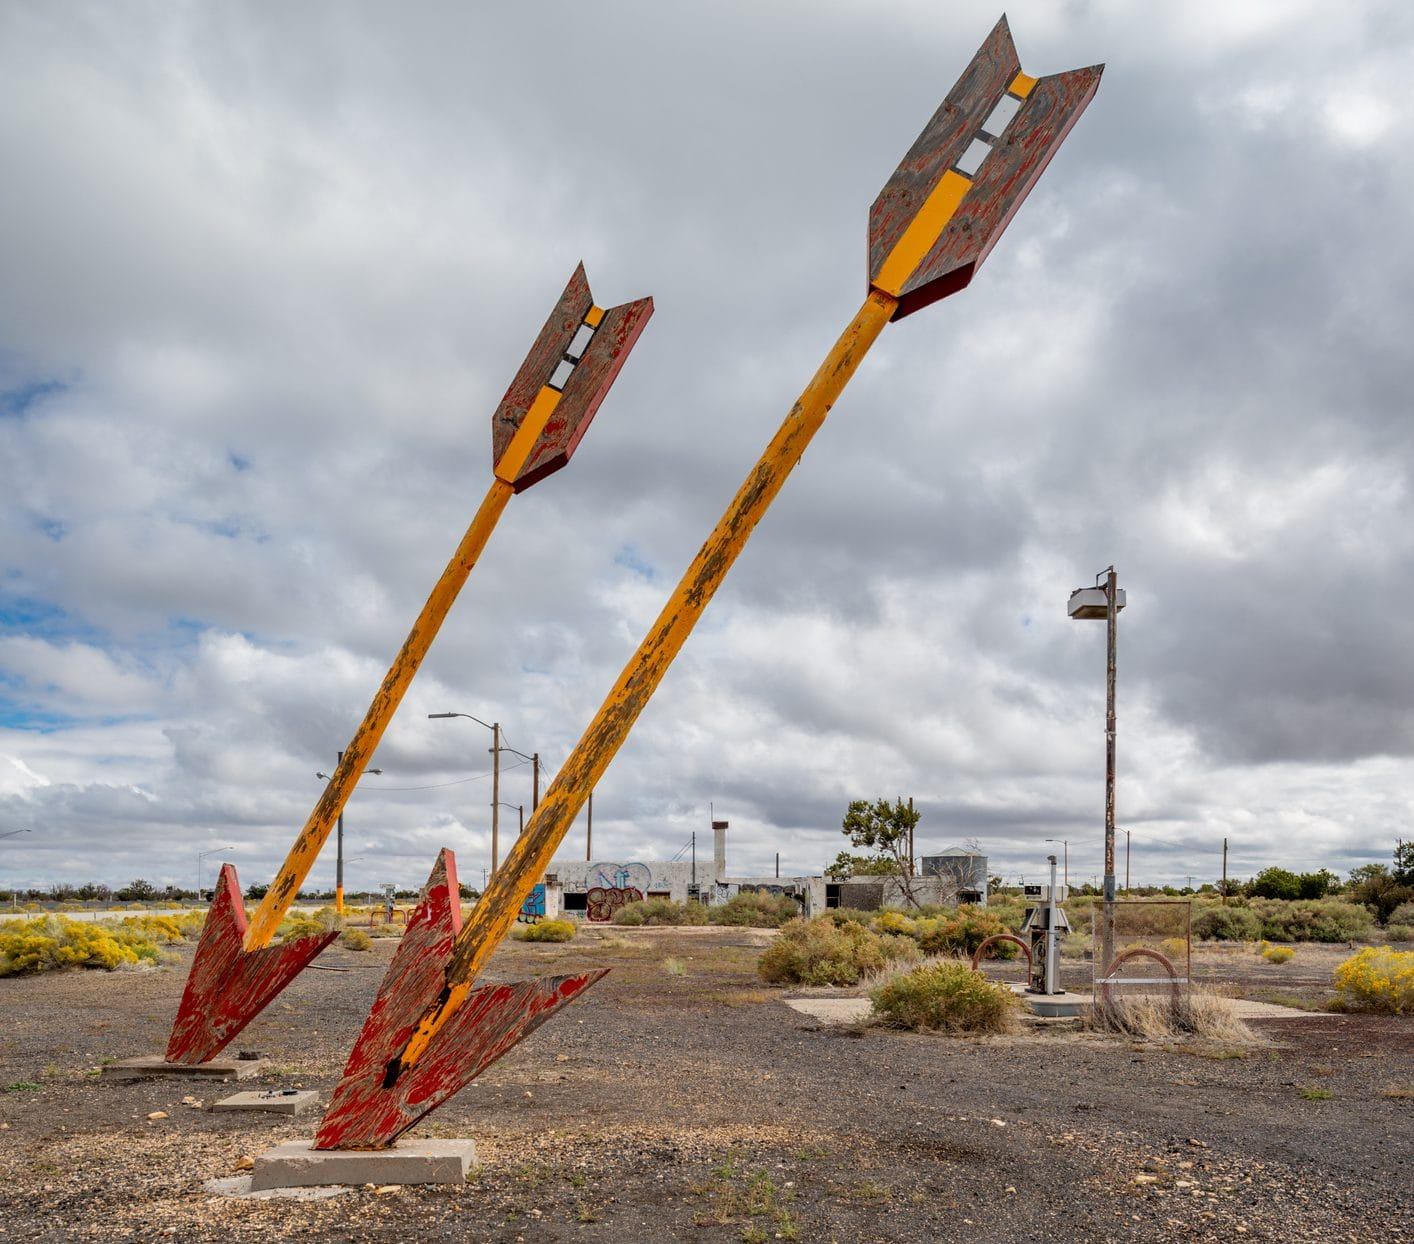 A pair of giant metal arrows in the ground.